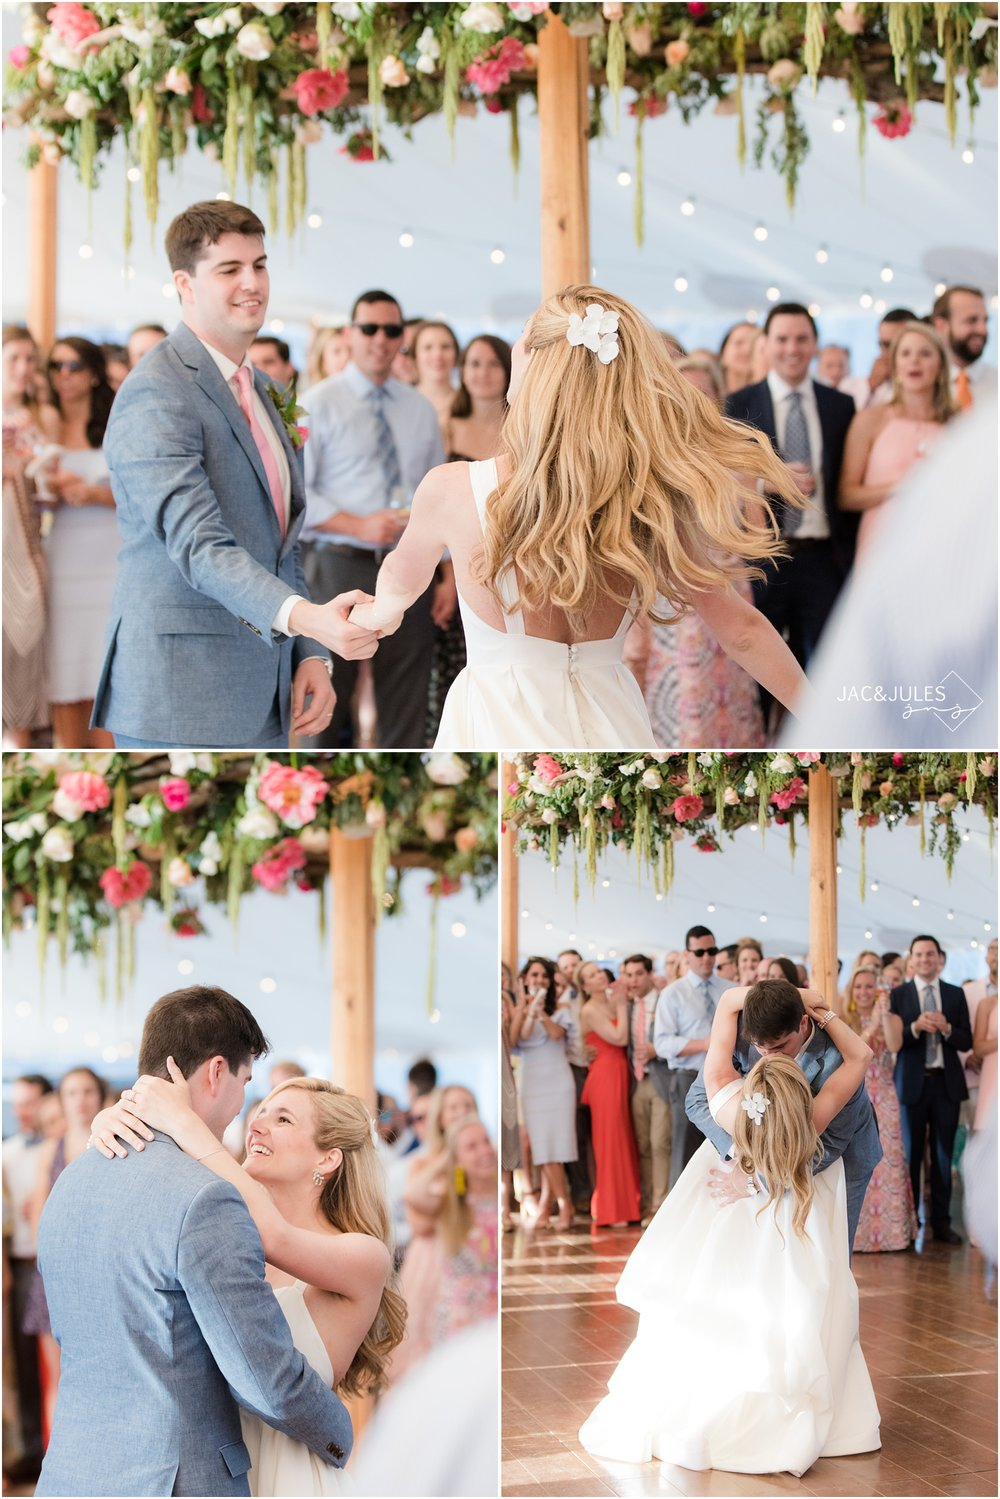 Bride and groom share their first dance at Mantoloking Yacht Club wedding reception under Floral wreath by Faye and Renee.